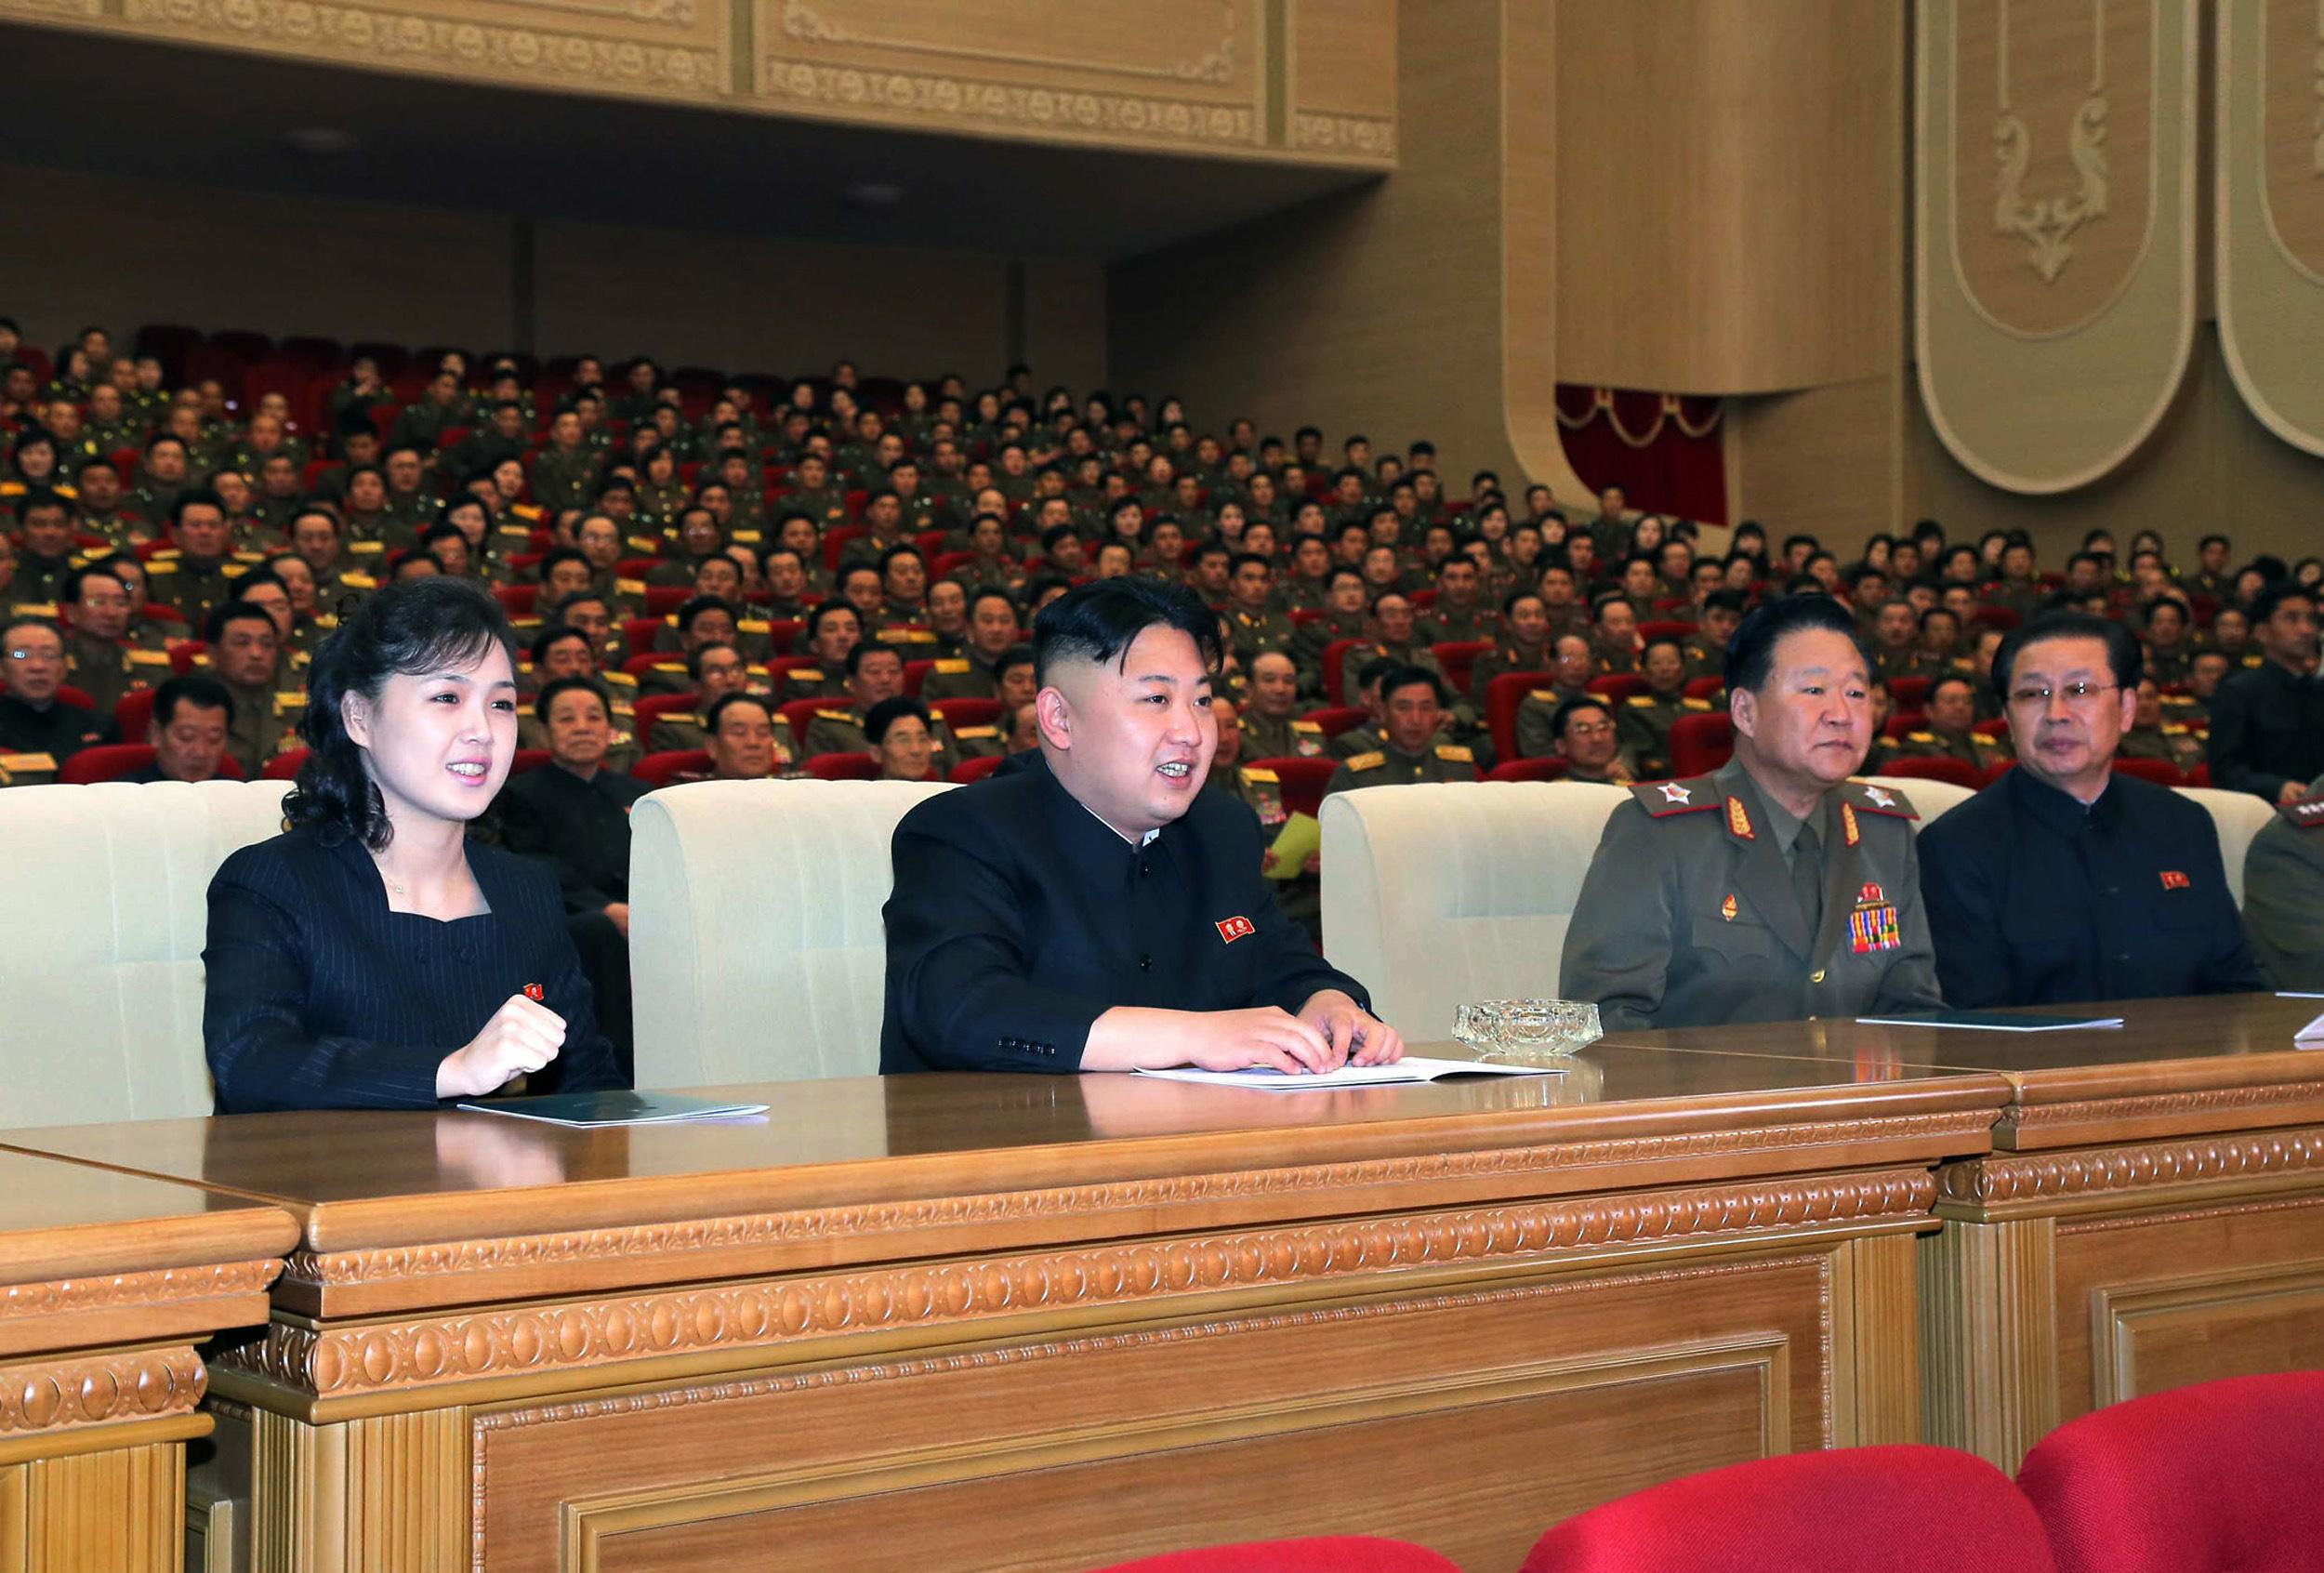 Kim Jong Un and Ri Sol-Ju